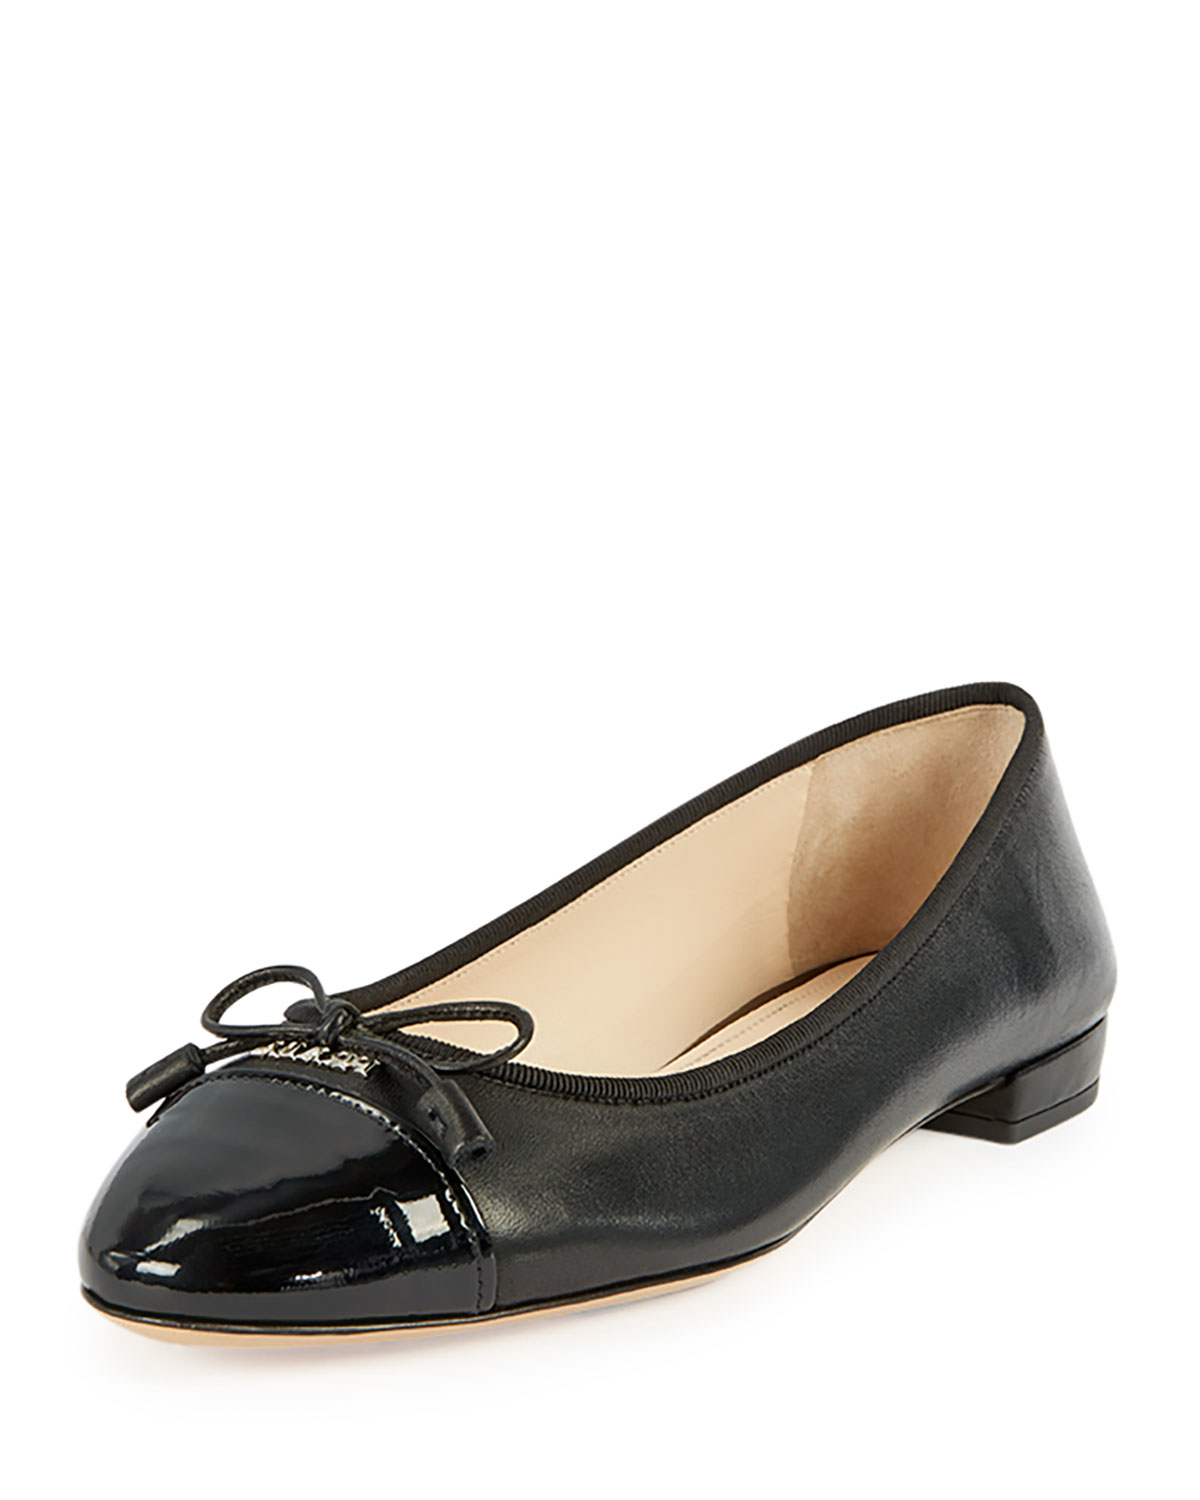 Leather ballerina shoes Prada SVzOd1F